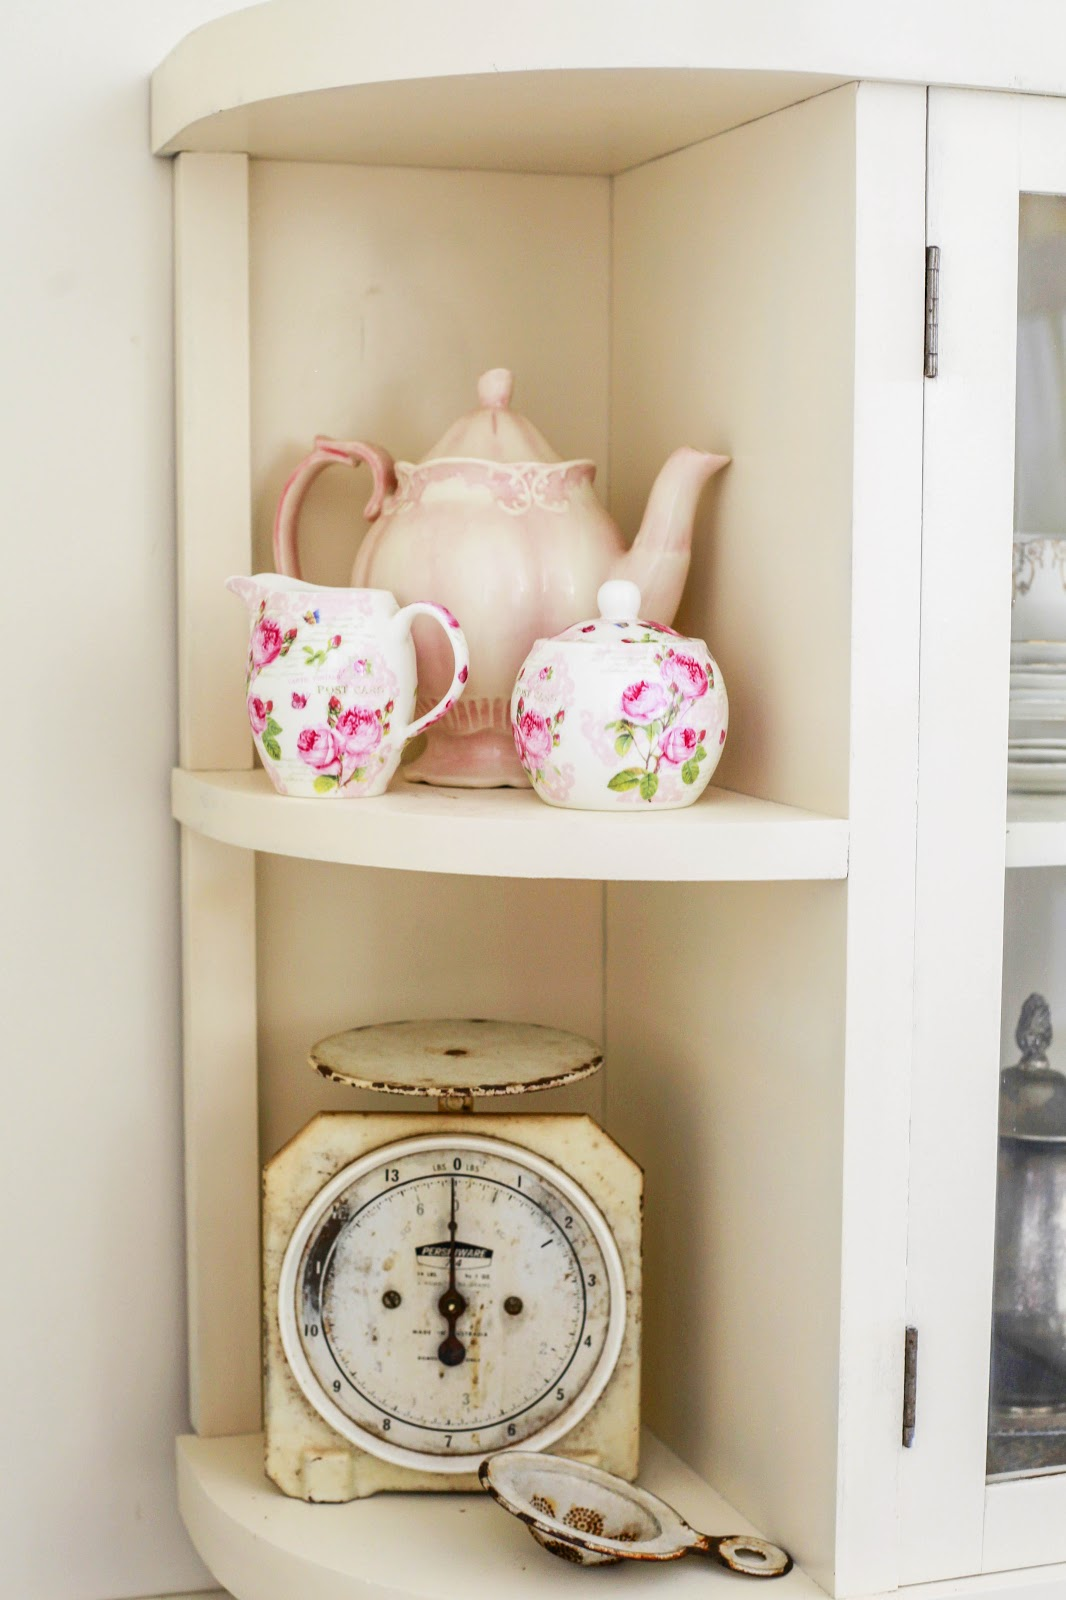 Whimsical Shelves Queen Anne Display Cabinet The Whimsical Wife